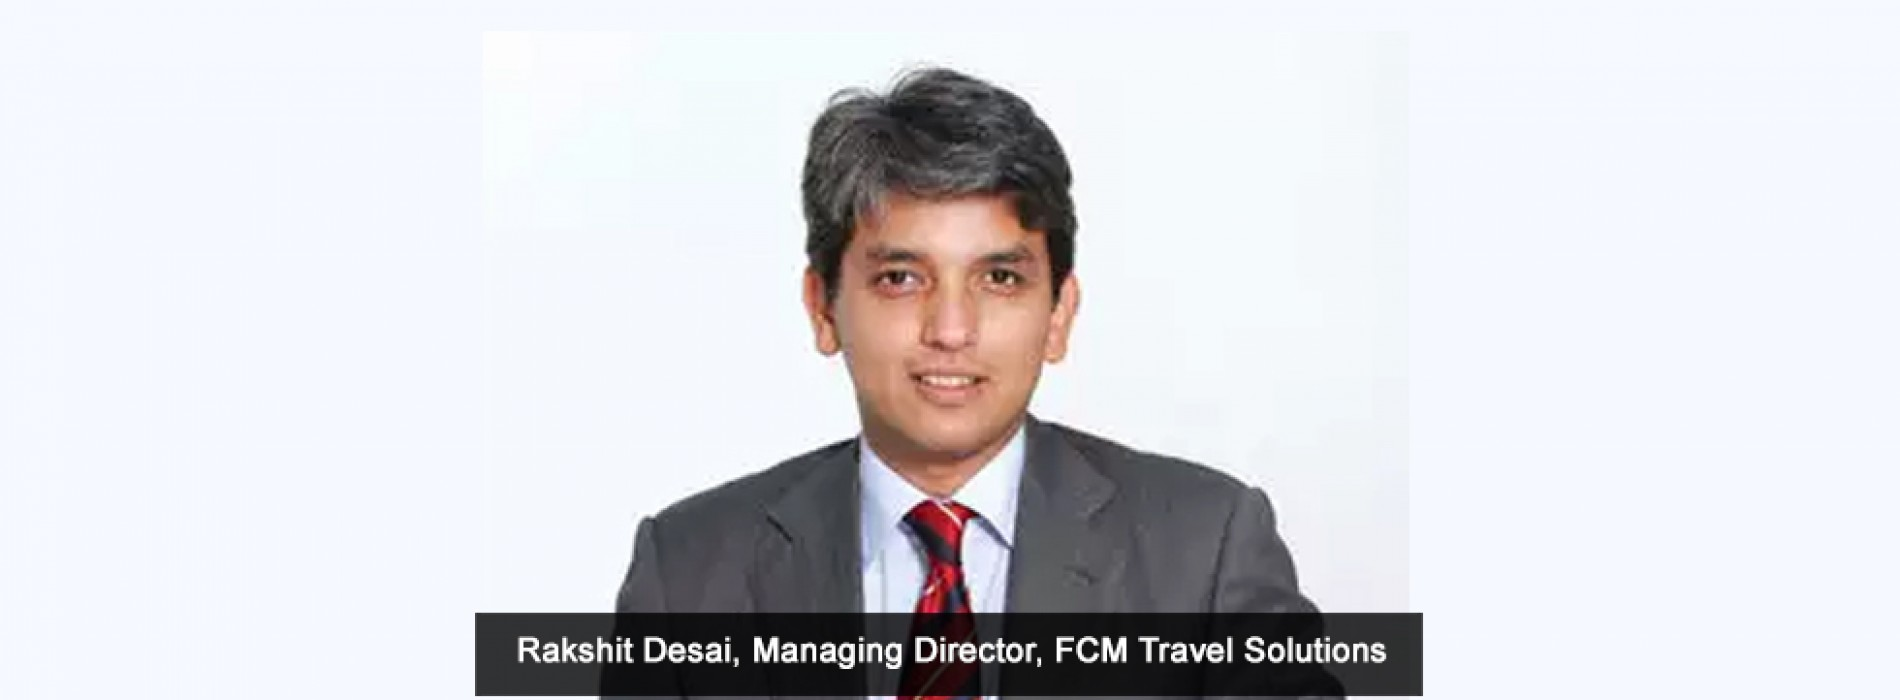 India witnessing gradual rise in adoption of tech advancements in travel: Report